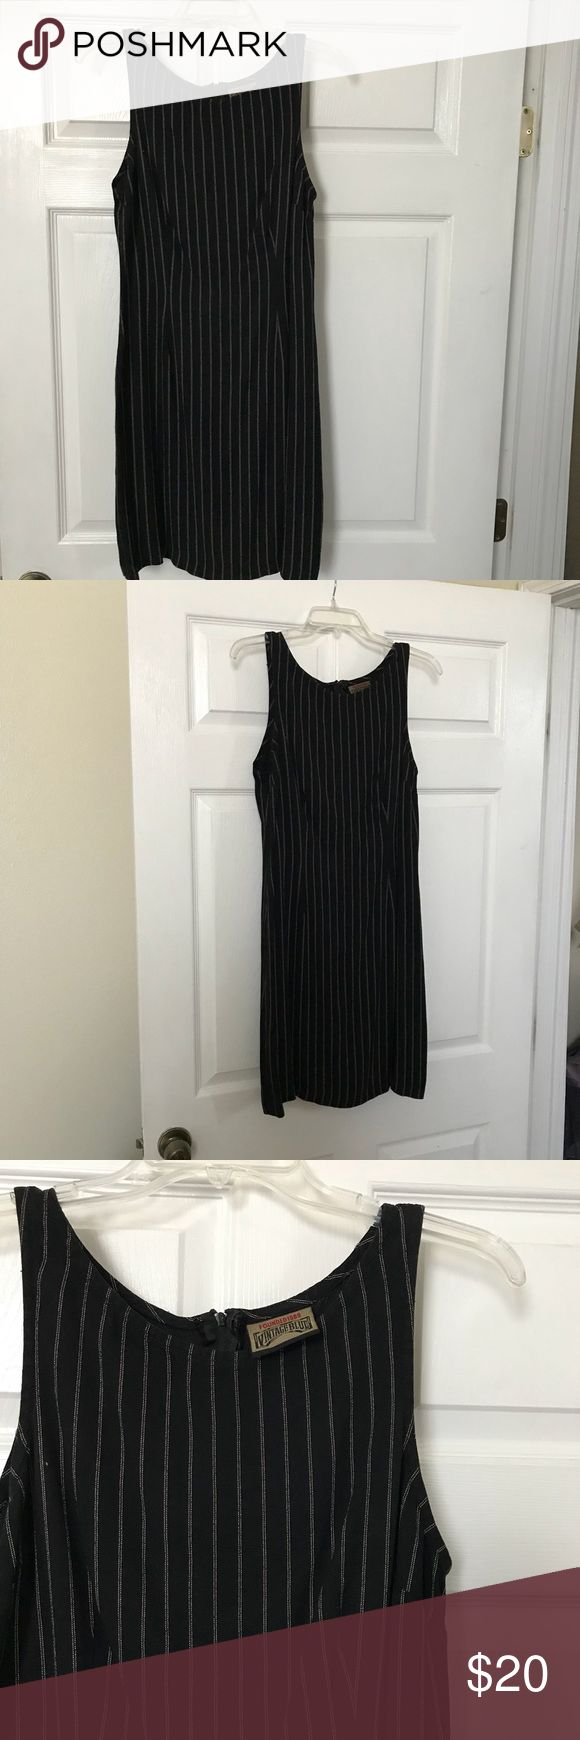 Vintage striped dress Worn once, had no size tag but fits a small perfectly. Im a size 4 in dresses. No damage, no rips no stains. Dresses